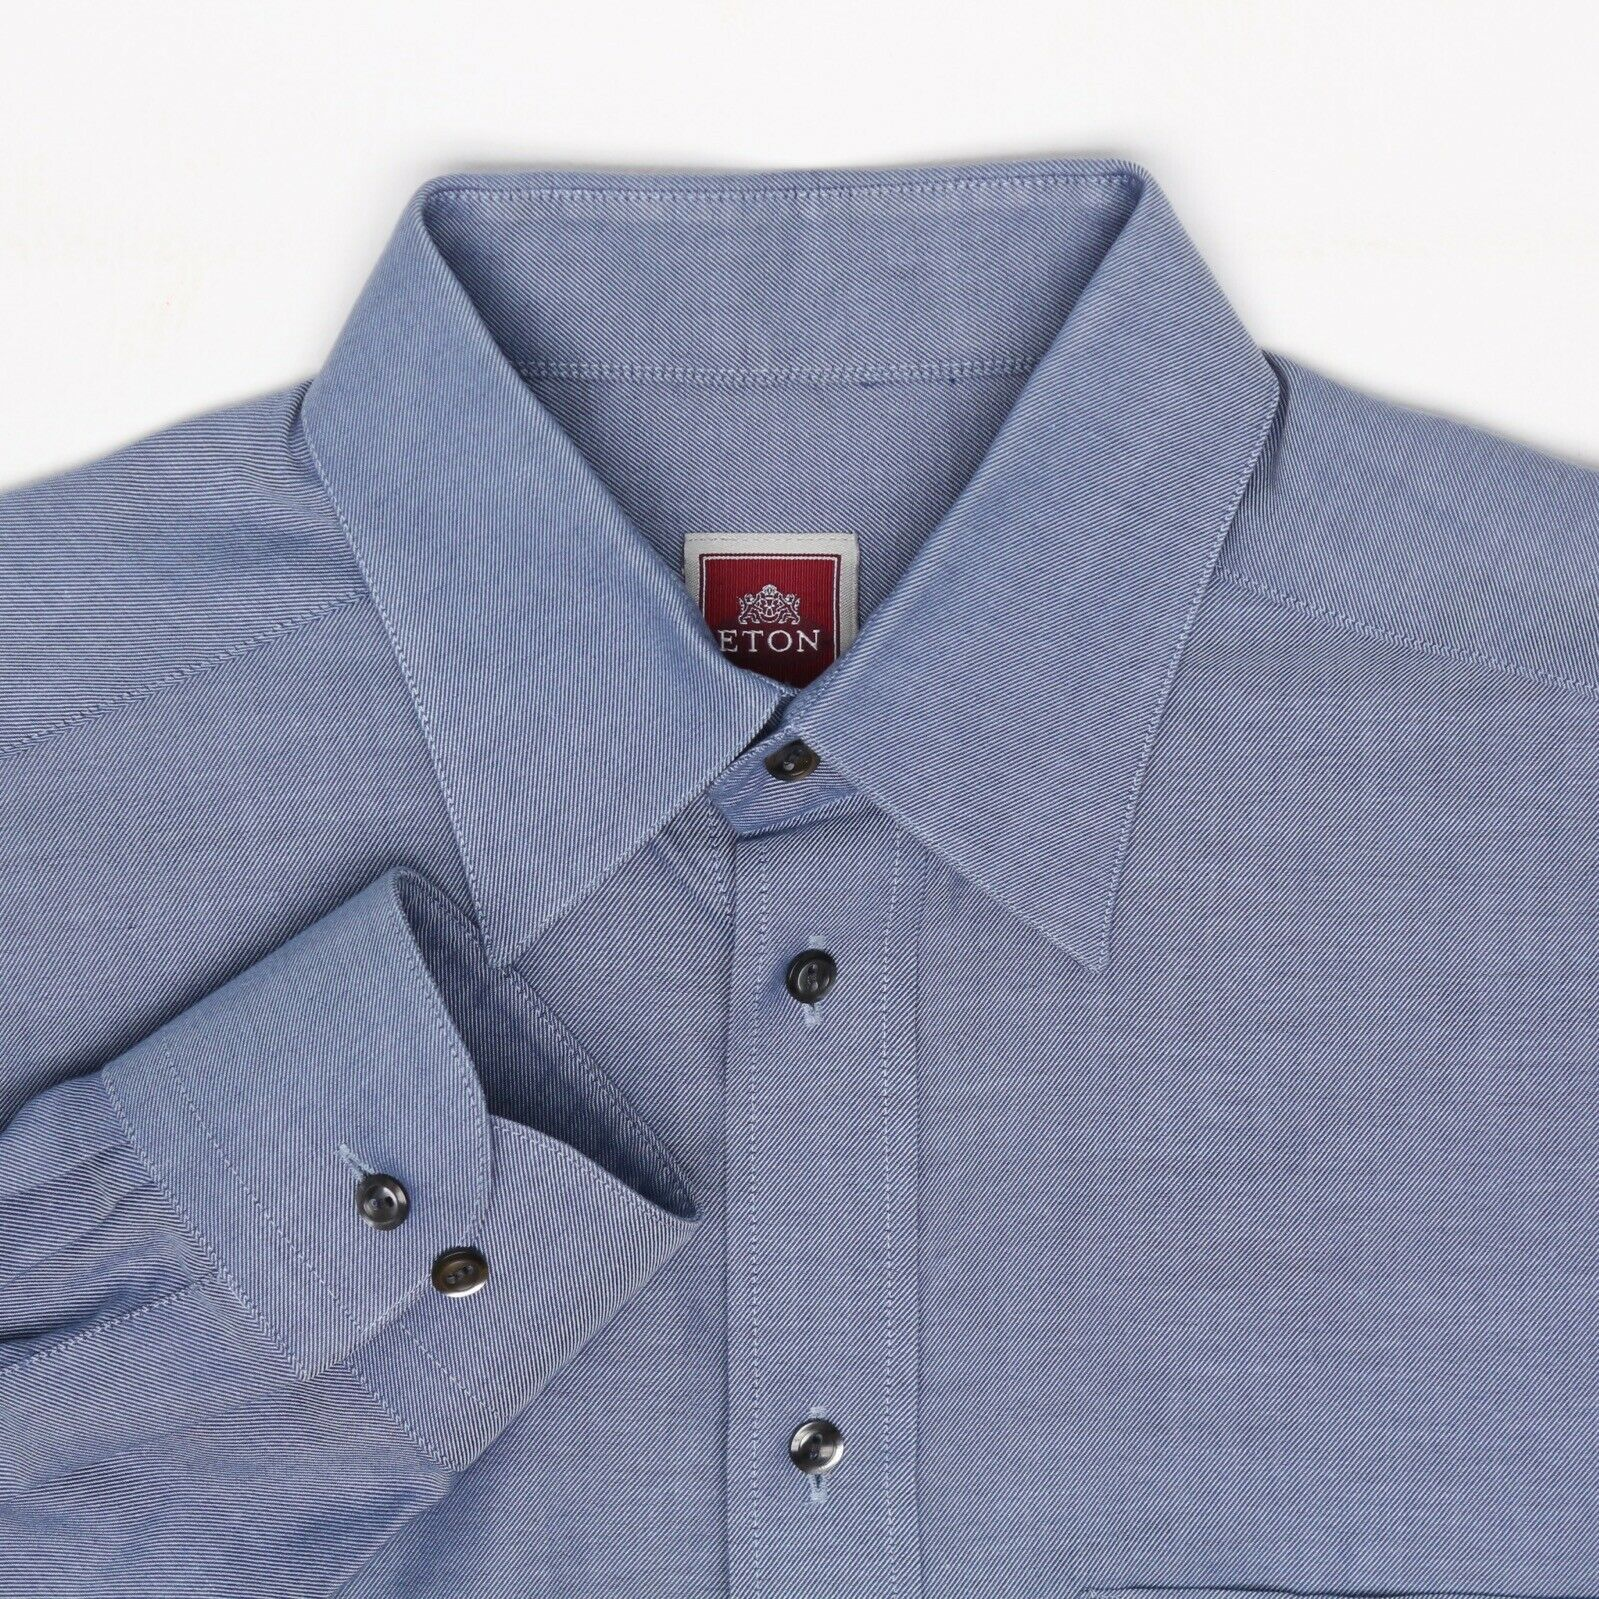 Eton Mens Dress Shirt 15.5 35 bluee End on End Weave Button Front Long Sleeve